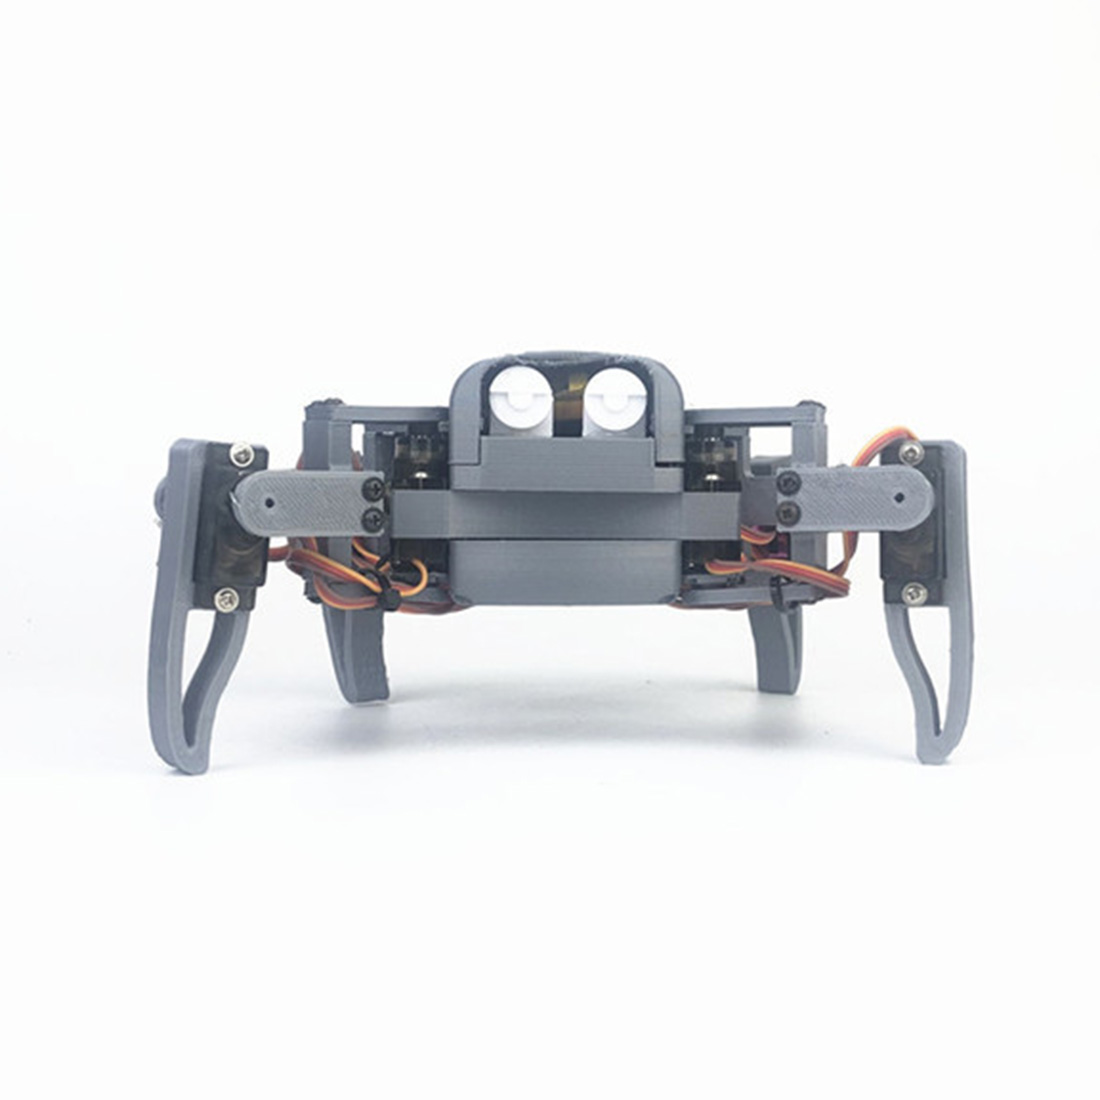 DIY Programmable Four-legged Spider Education WIFI Phone Can Control Robot Kit For Nodemcu